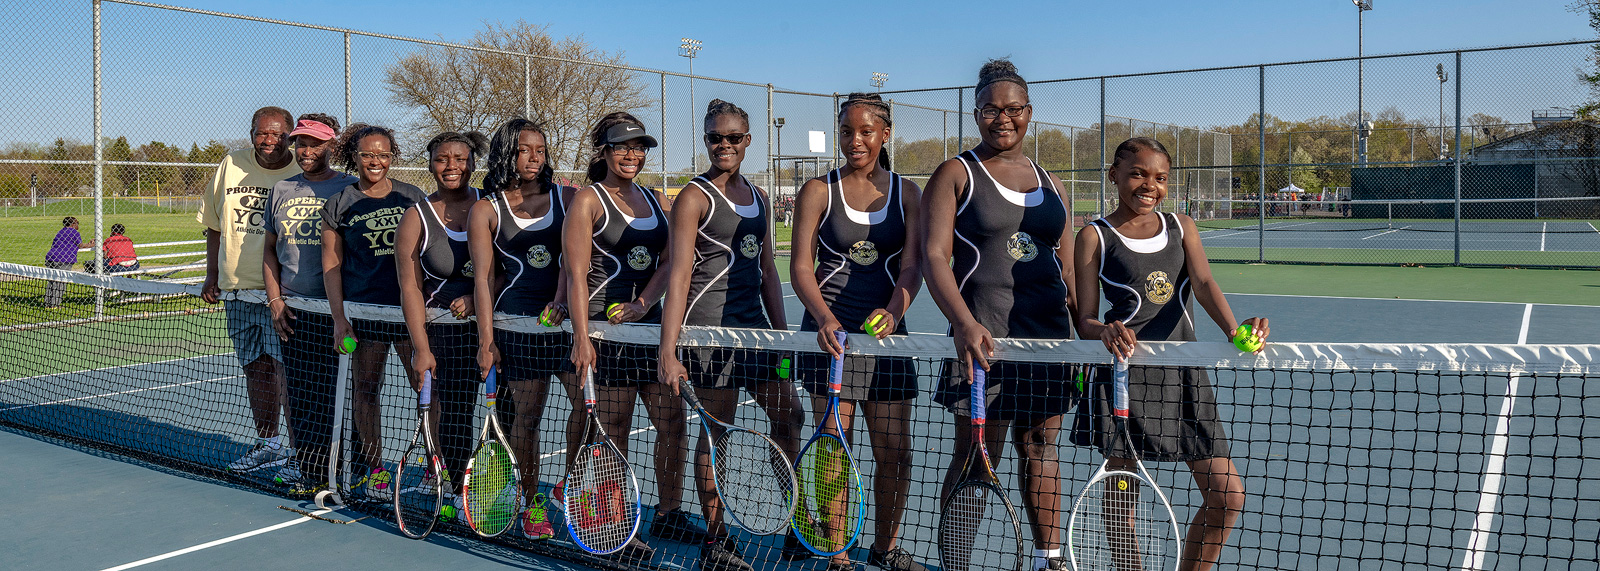 The YCHS Girls Tennis Team